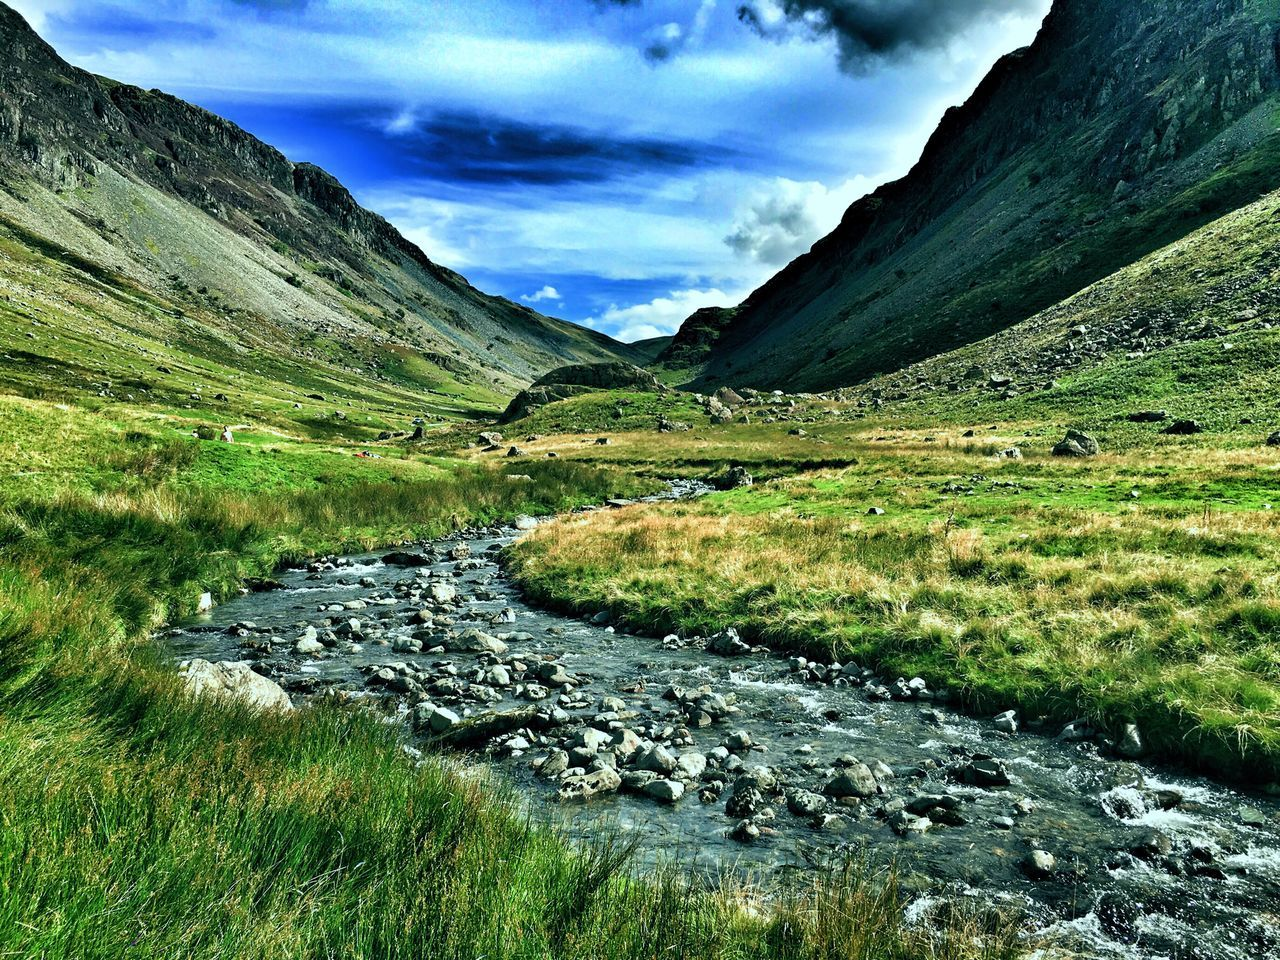 Lake District Lake District Series Cumbria England Honisterpass Nature Landscape Blue Sky EyeEm Nature Lover Landscape_Collection Mountains Hills And Valleys Nature Photography Landscape_photography Hillside Summer Views Hills Landscape #Nature #photography Summer EyeEm Best Shots - Nature Eyemphotography Eyem Nature Lovers